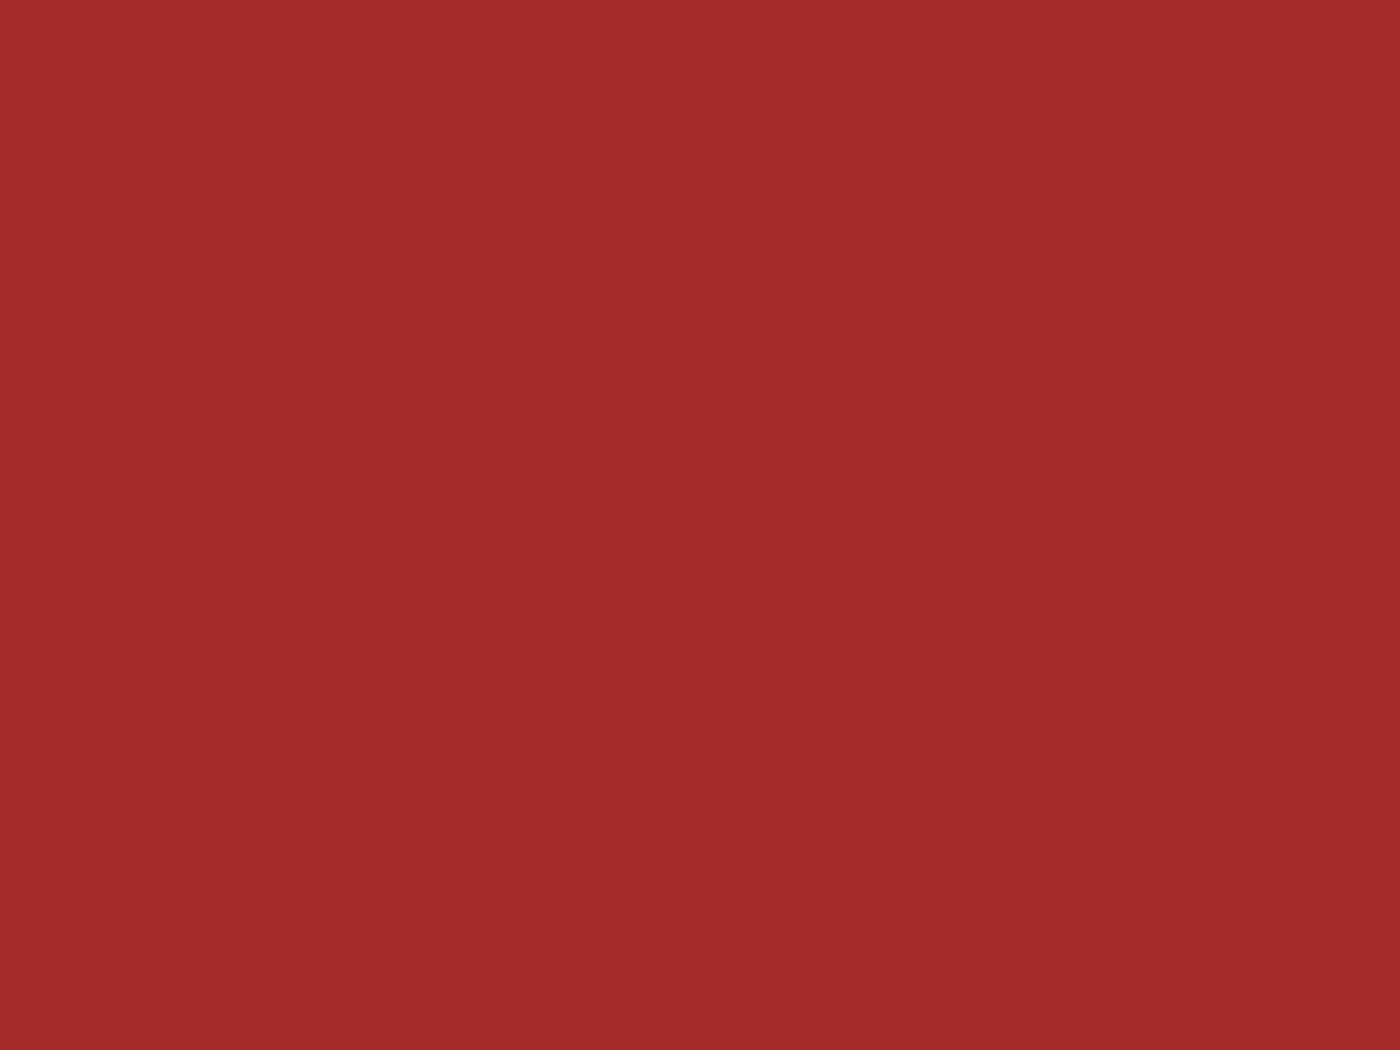 1400x1050 Red-brown Solid Color Background